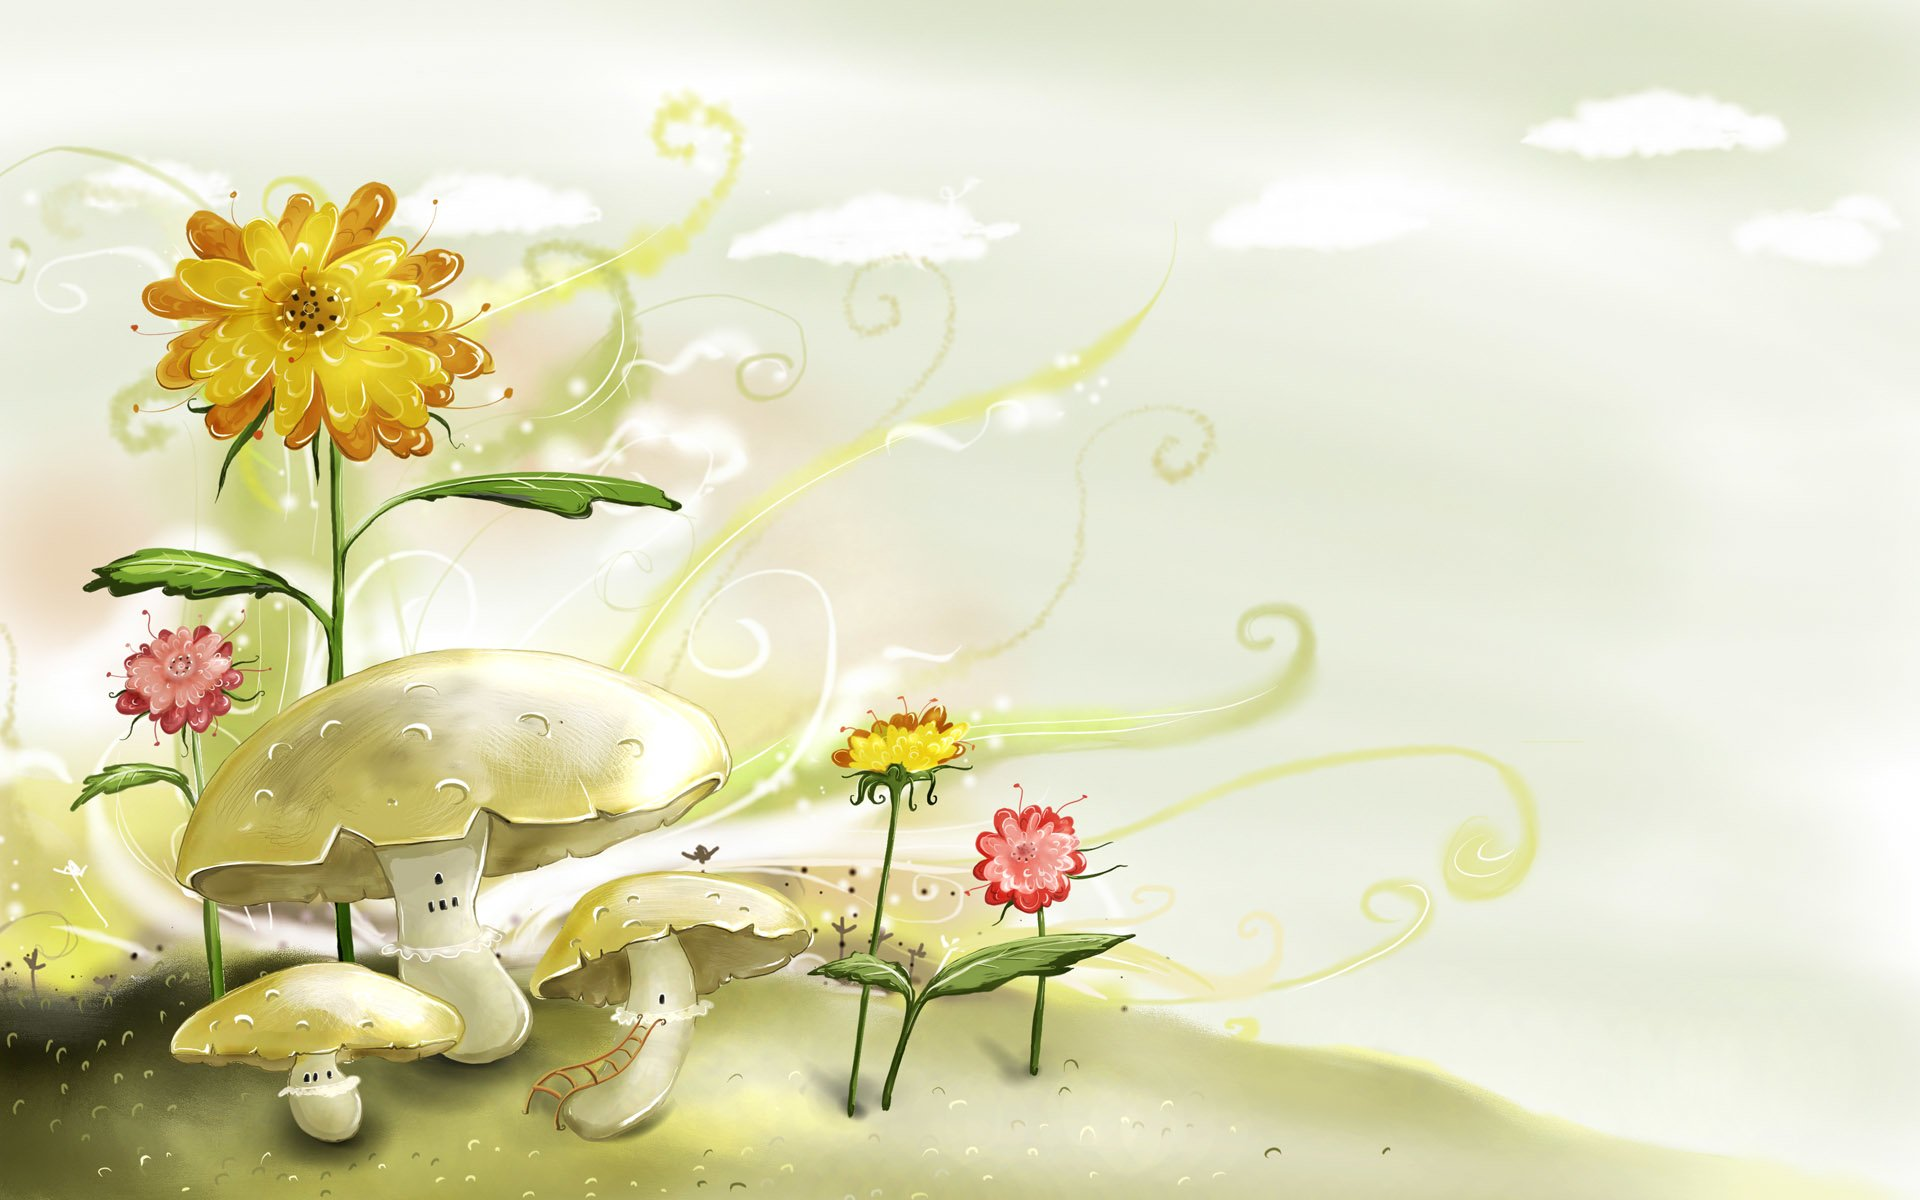 Wallpapers ID:150137